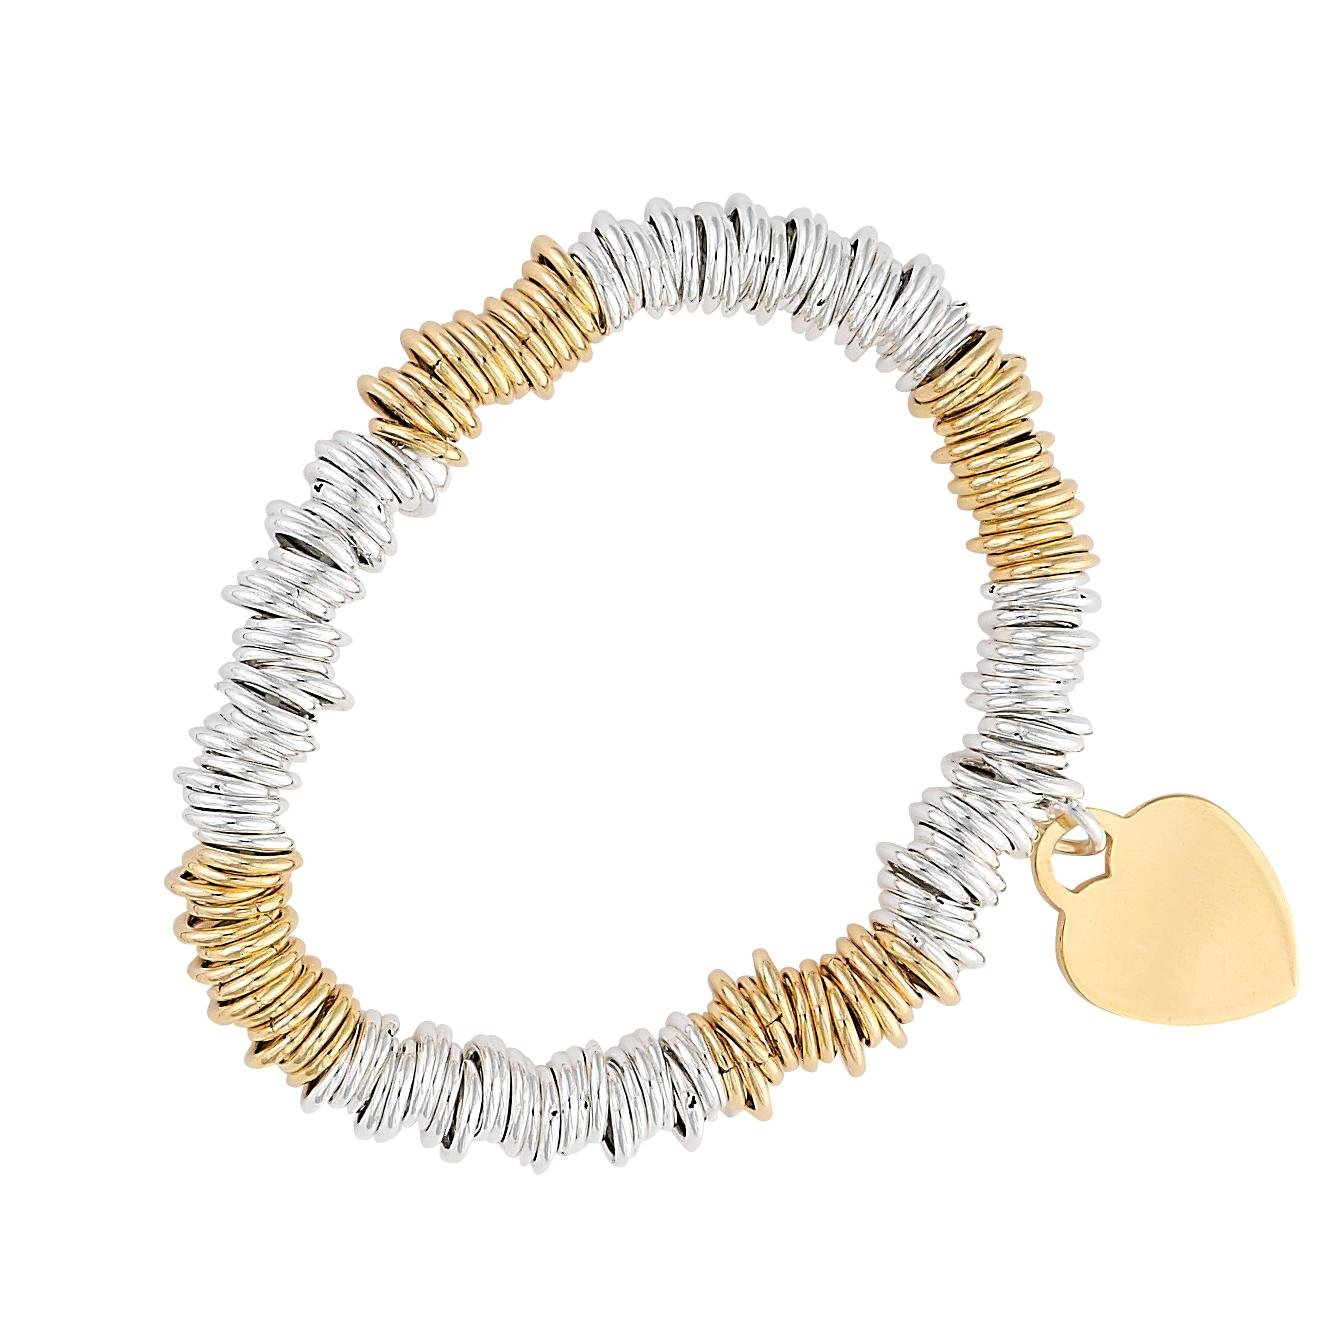 Sterlings Silver & Gold Plated Stretch Loop Linked Bracelet 8'' Free Gift Pouch